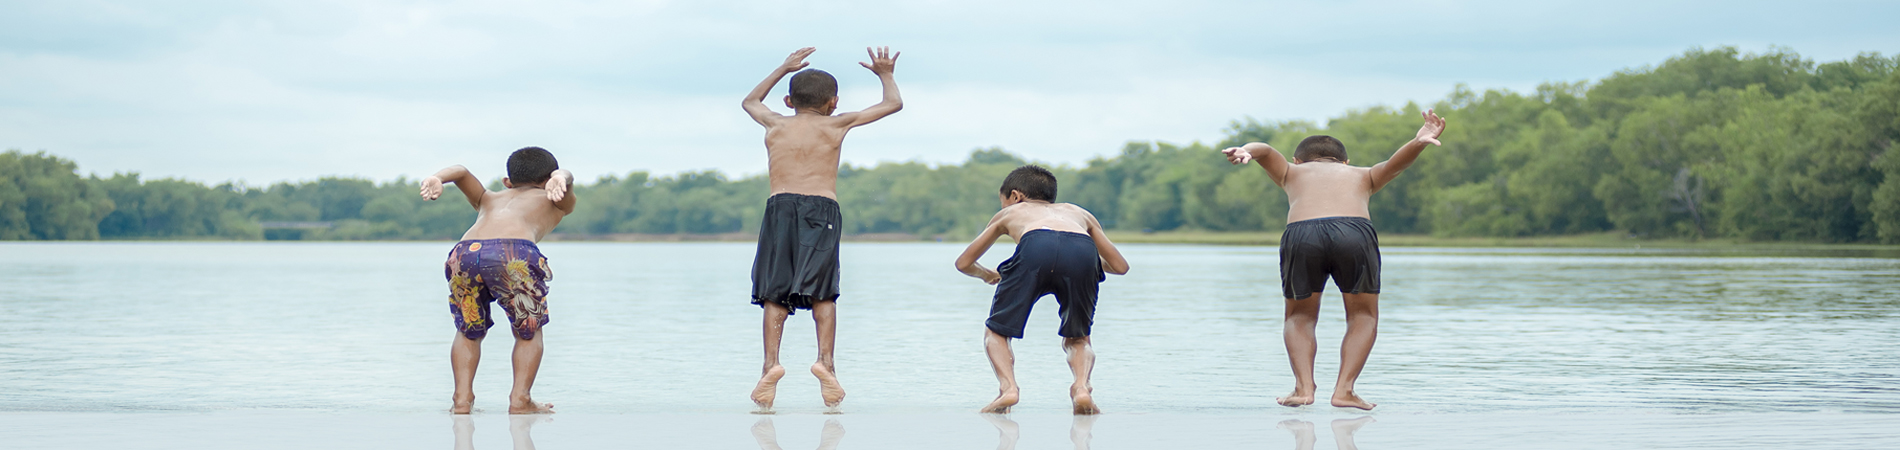 Children jumping in the water